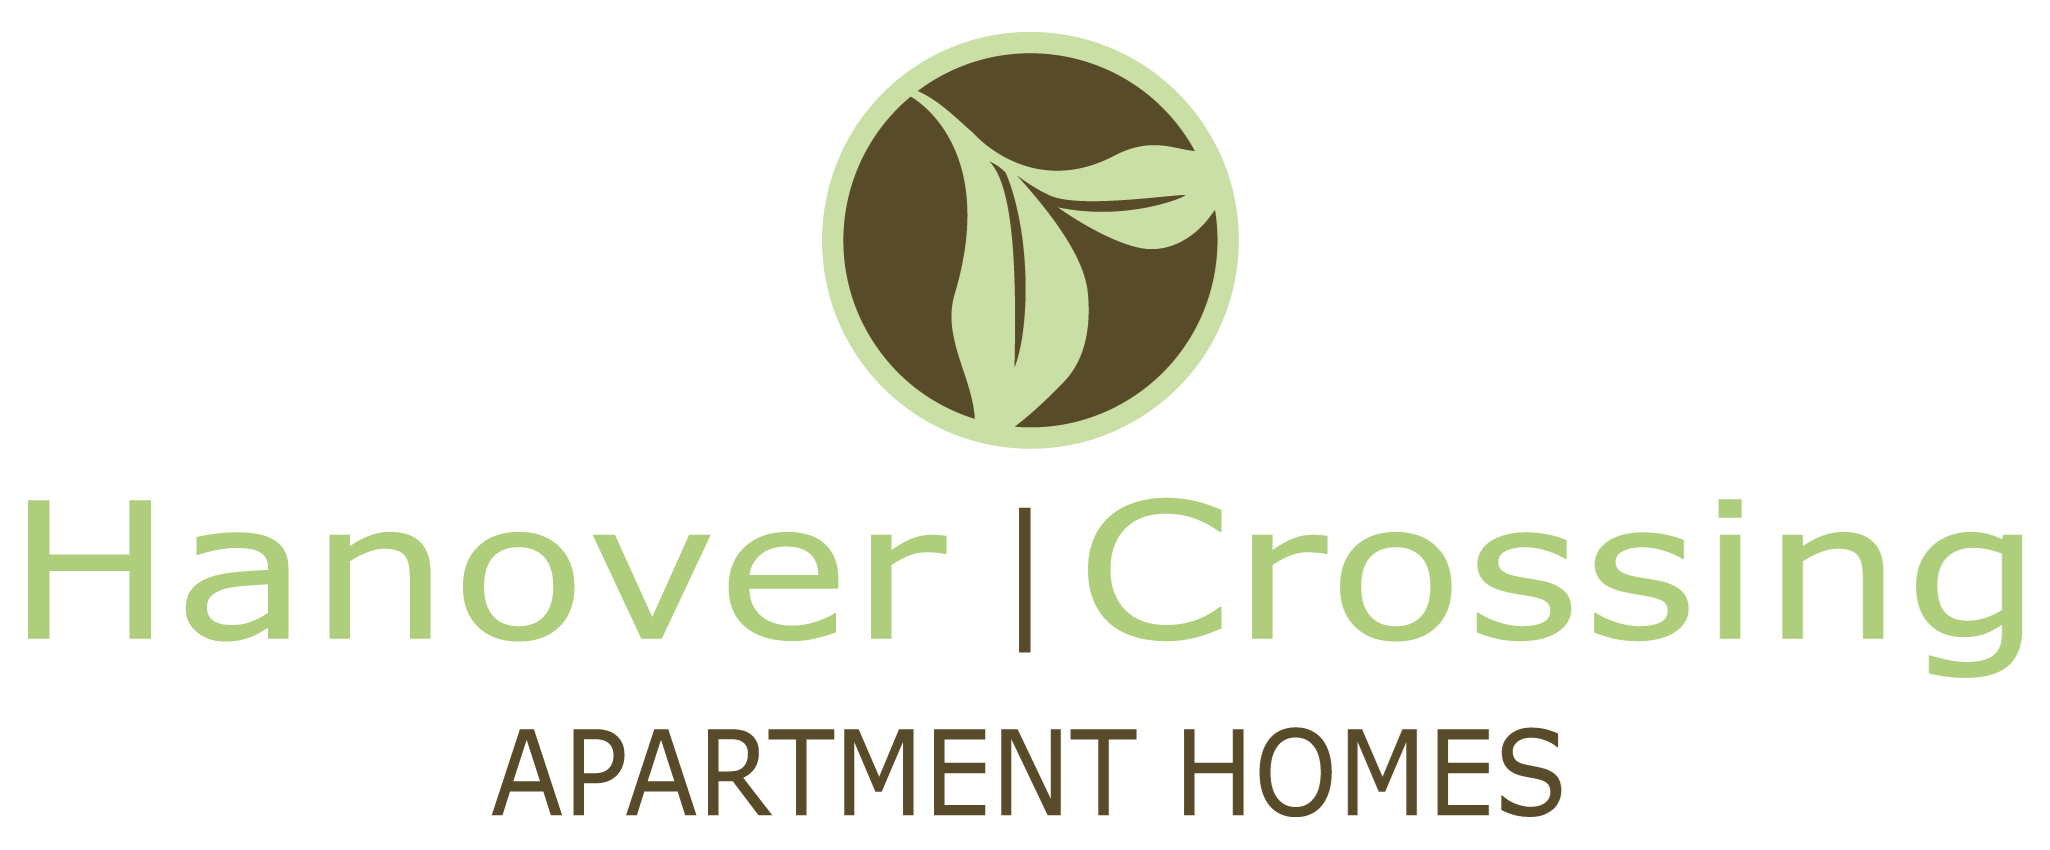 Hanover Crossing Apartments for rent in Mechanicsville VA